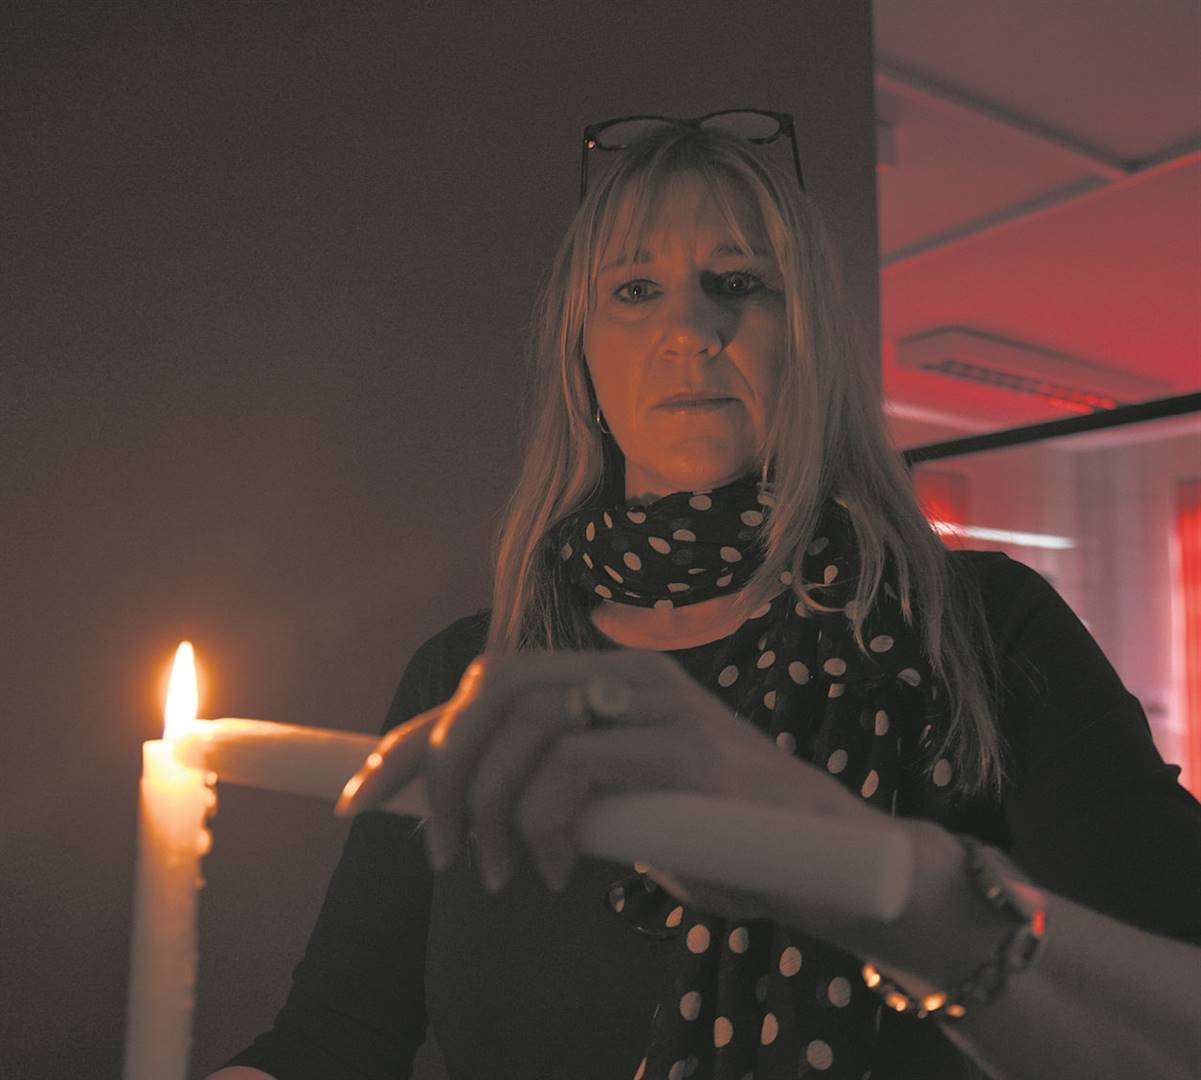 PHOTO: suppliedPietermaritzburg and Midlands Chamber of Business CEO, Melanie Veness, holds up candles during a period of load shedding at the chamber's offices.Photo.Moeketsi Mamane